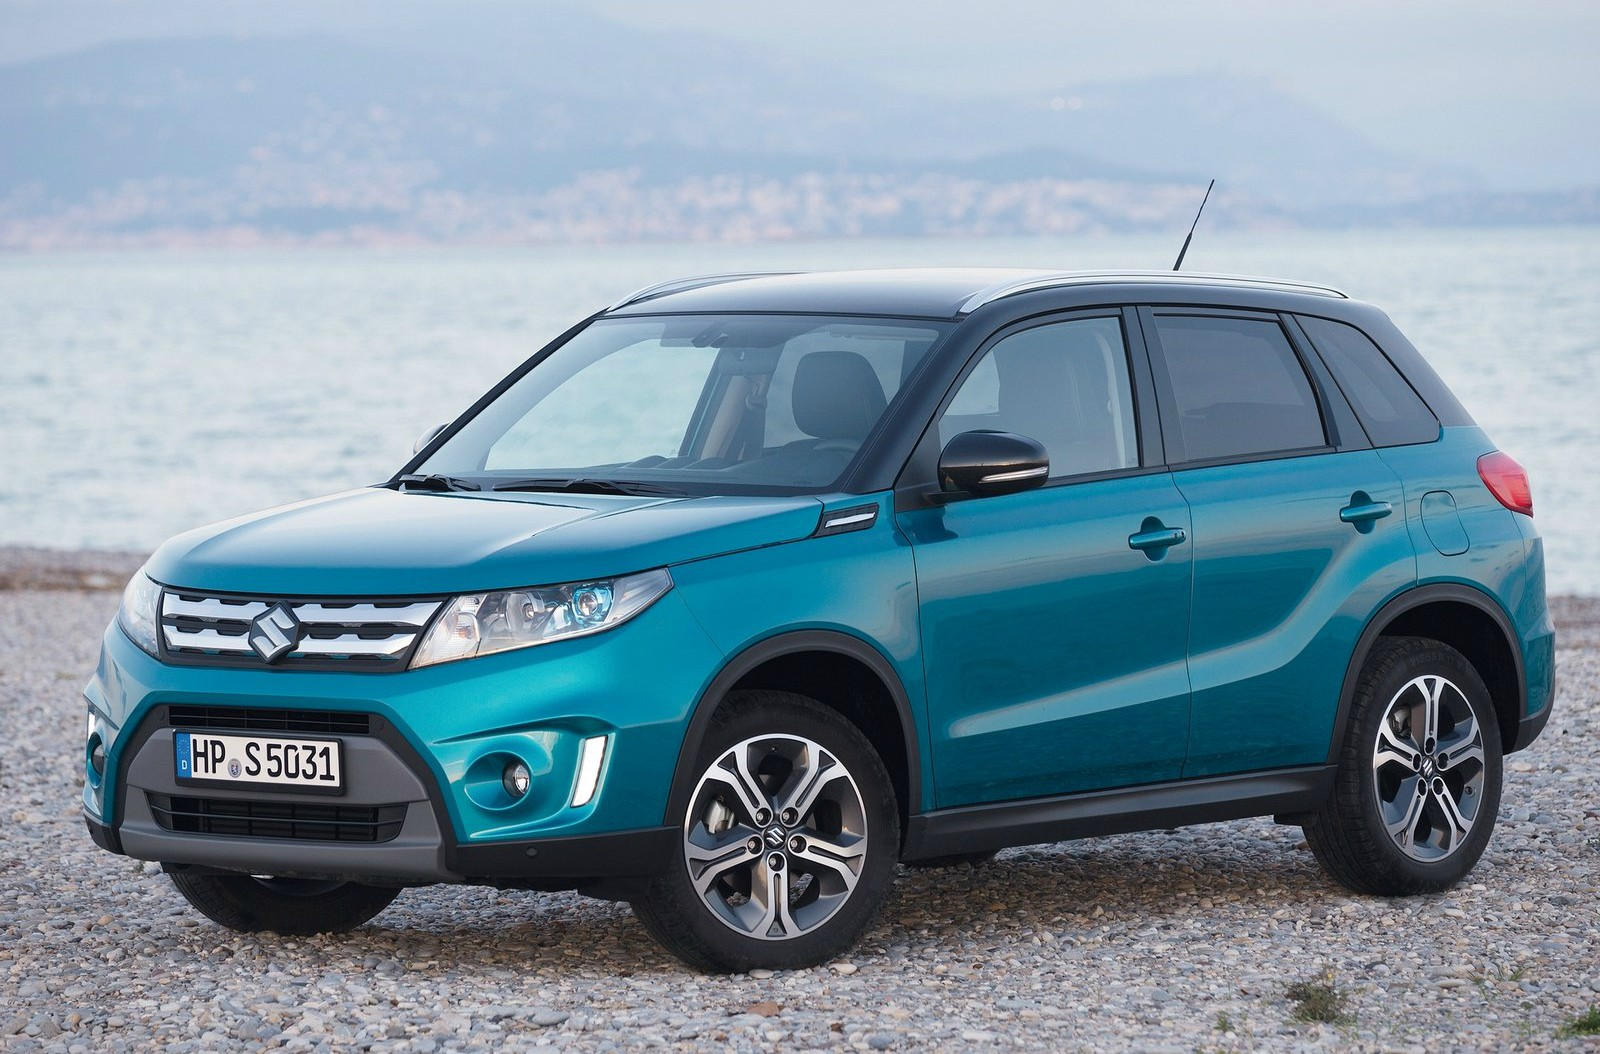 2015 suzuki vitara hailed as the cleanest non hybrid 4x4. Black Bedroom Furniture Sets. Home Design Ideas